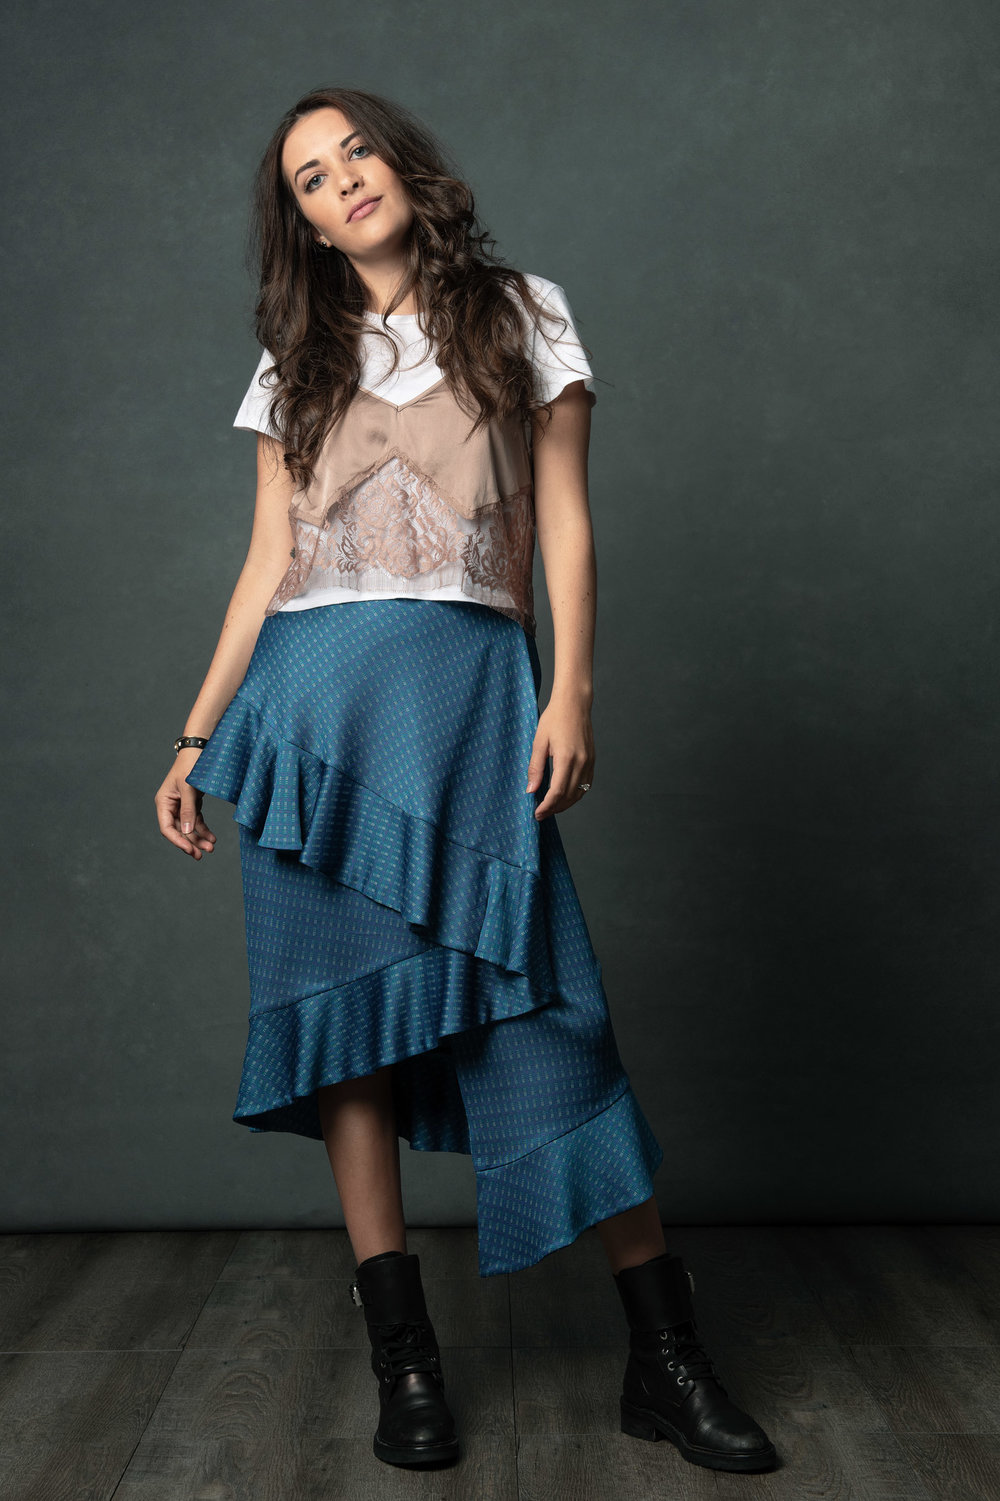 The Concept Creator - Marcela Jongezoon in the Fascination Skirt.